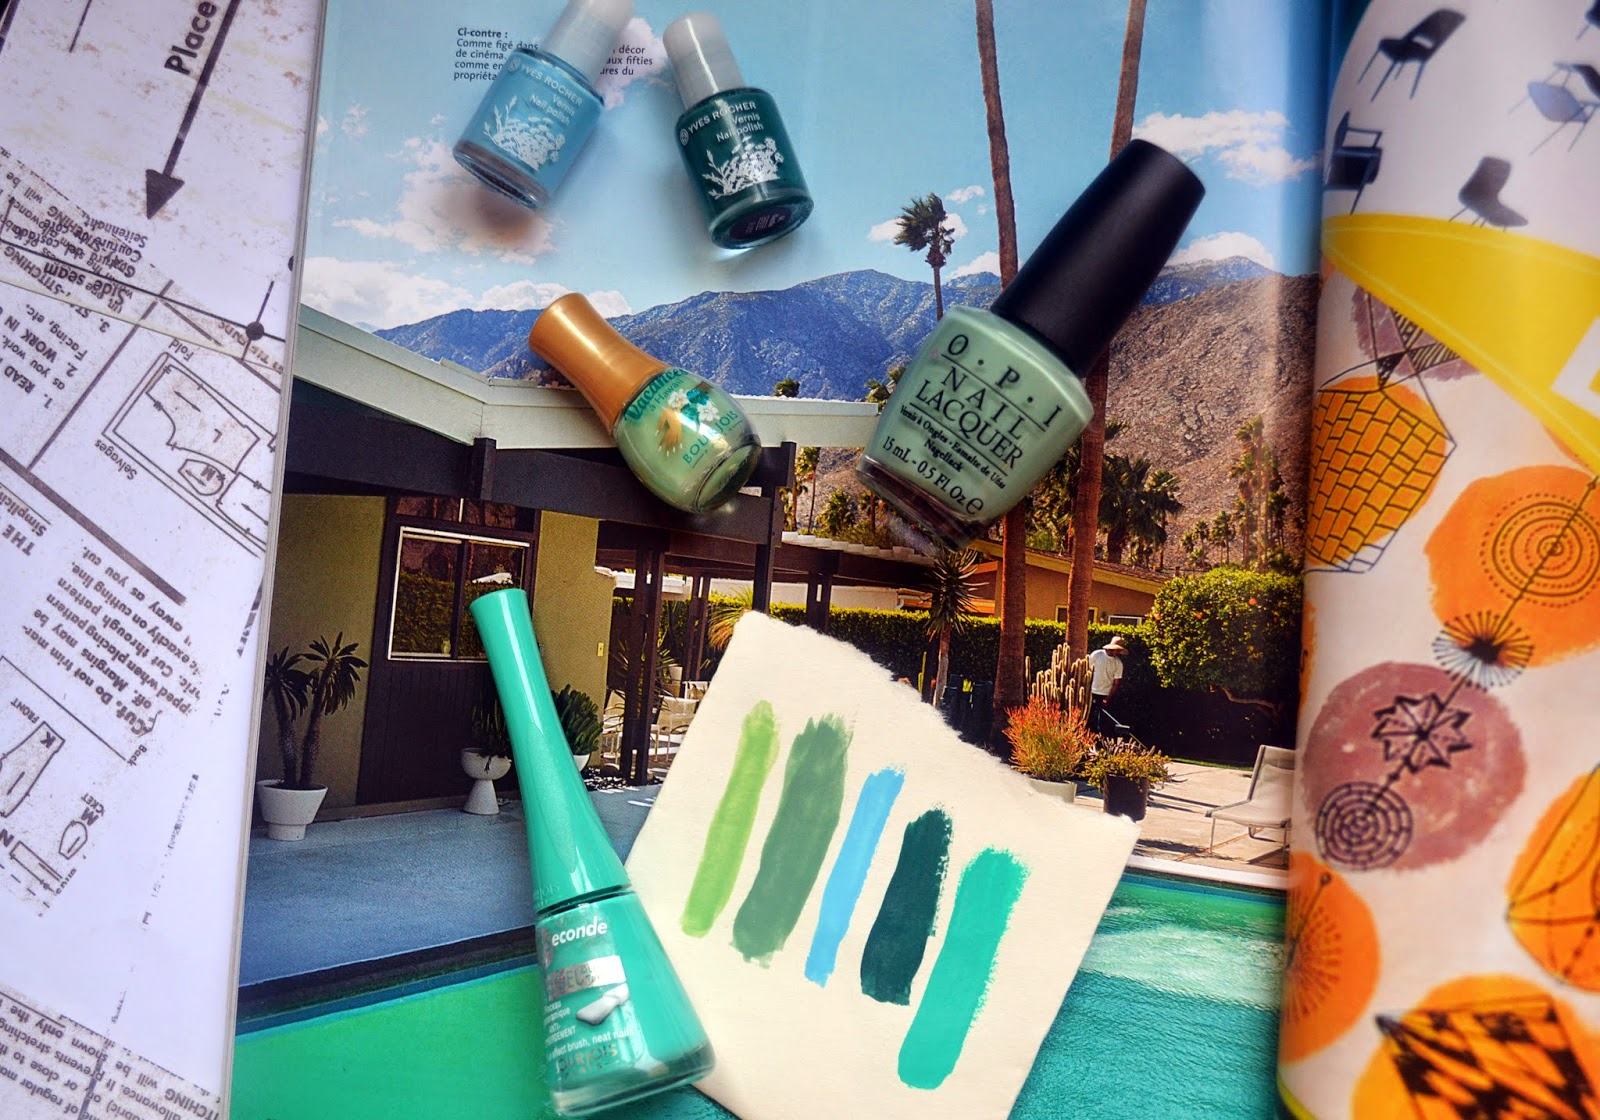 Mint/Turquoise nails polish selection for summer